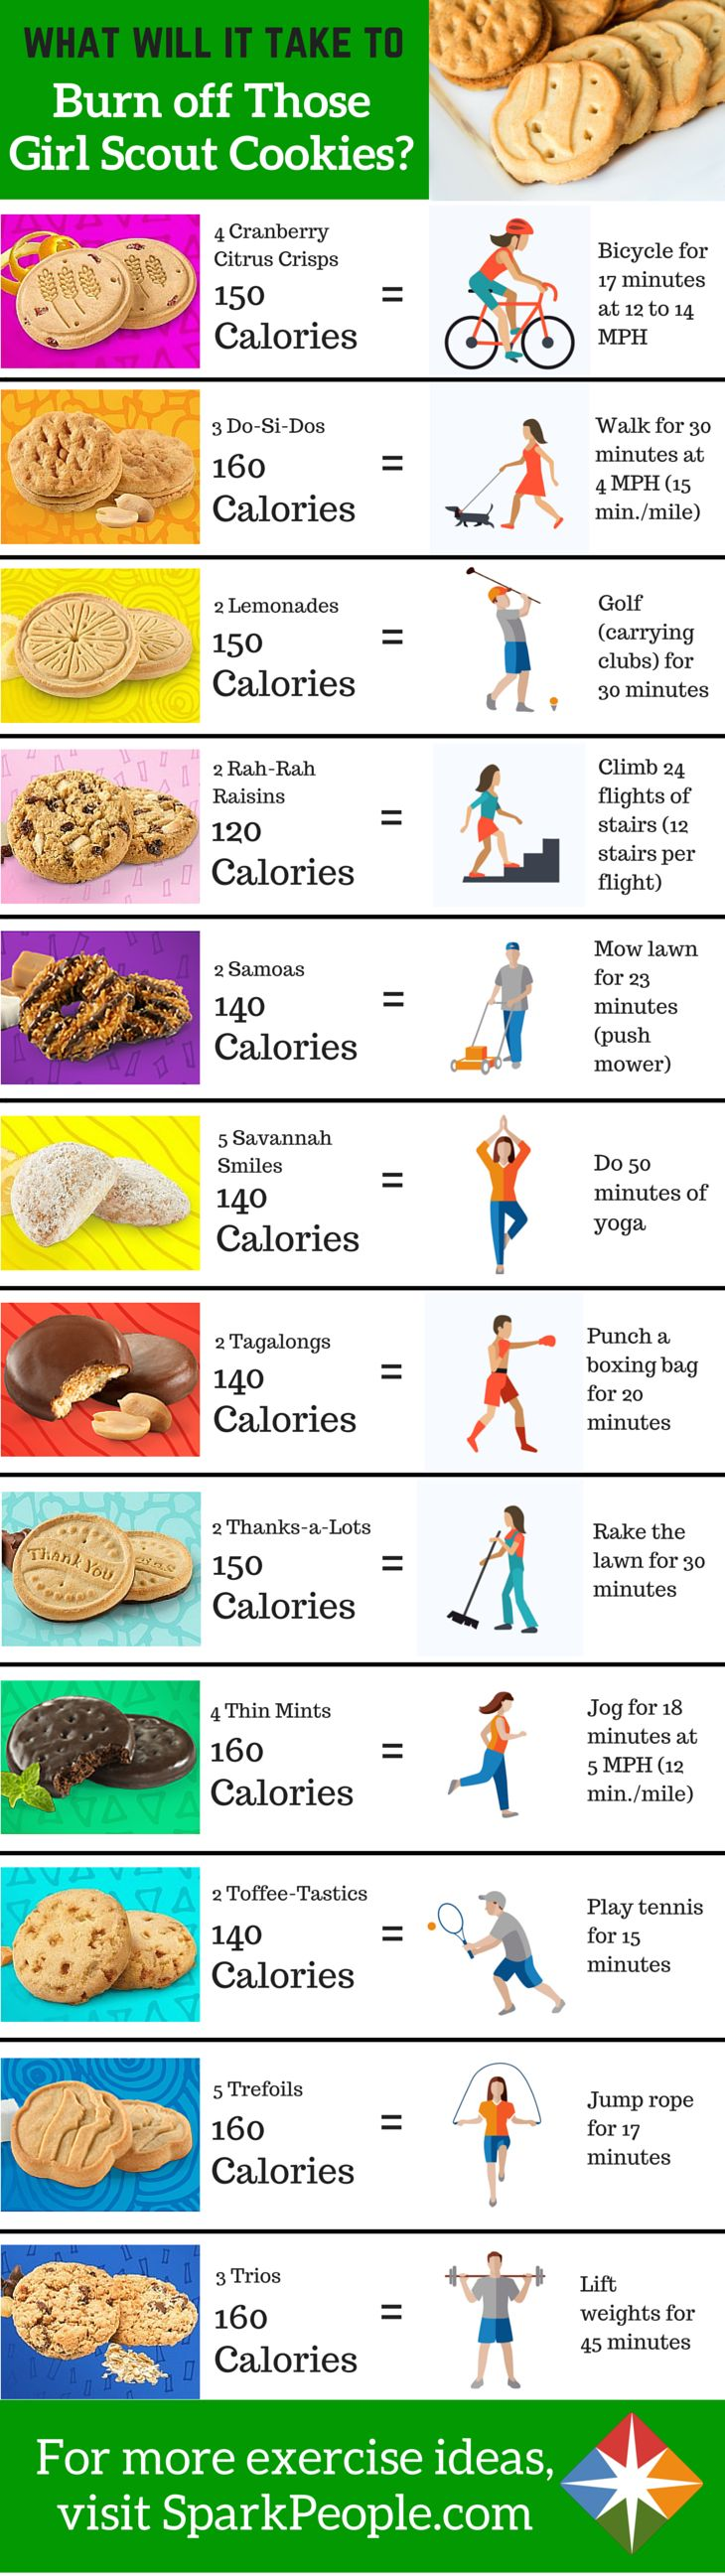 How many calories does it take to burn a pound?